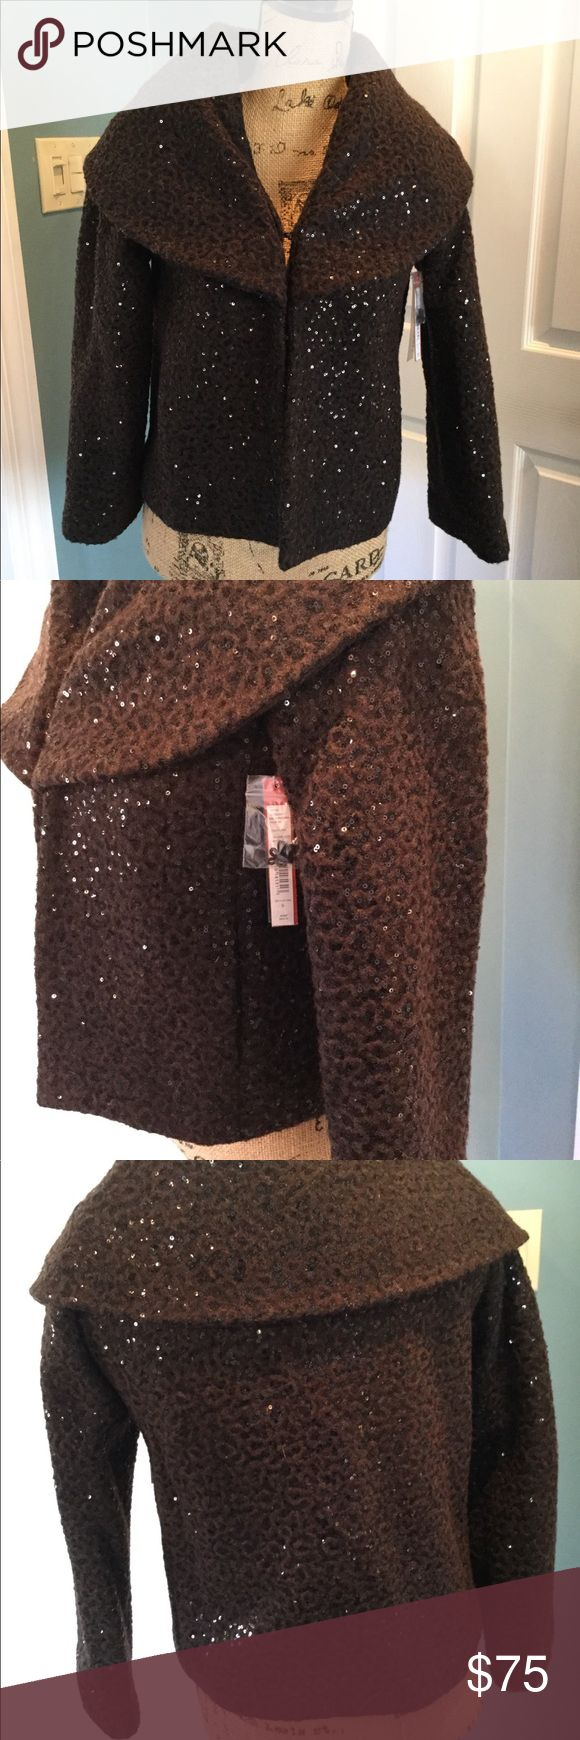 New Alice & Olivia sequin coat New with tags. Brown sequin Alice & Olivia coat. Size small. Alice + Olivia Jackets & Coats